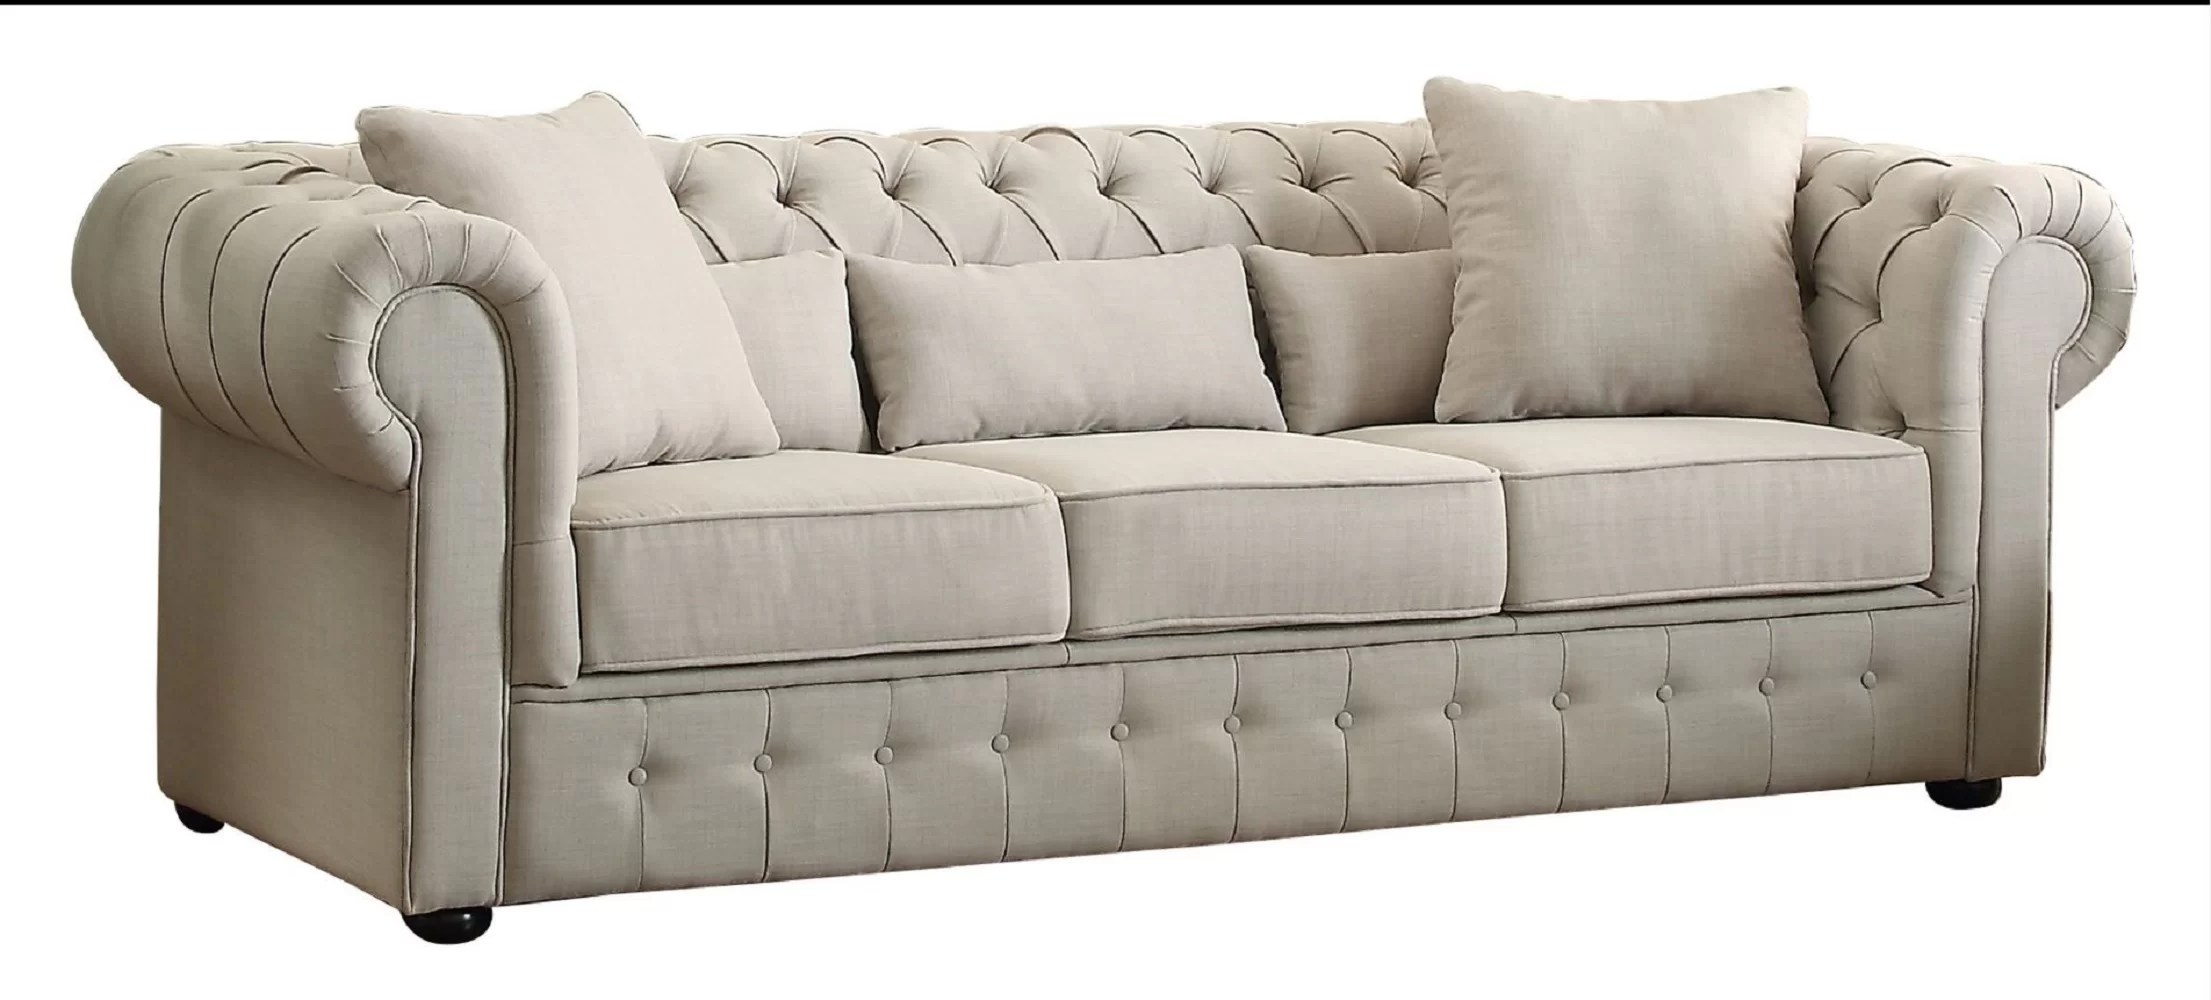 Chesterfield Sofas Free Shipping Over 35 Wayfair